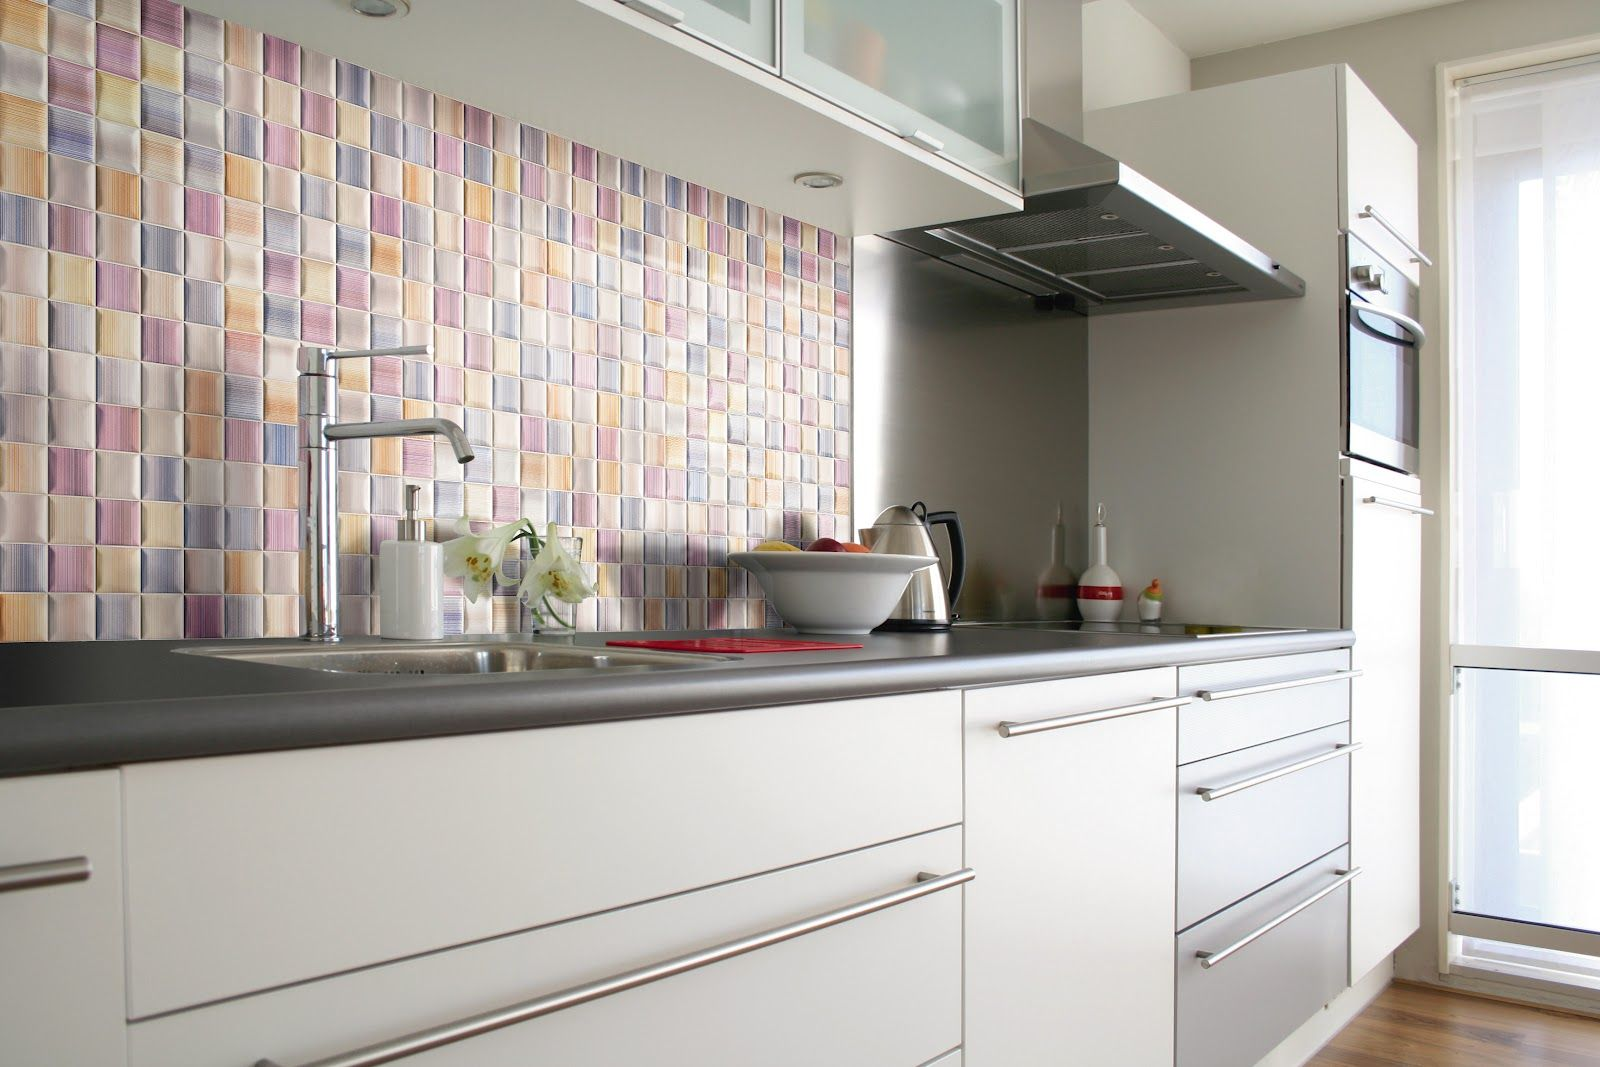 Pretty Pastel Backsplash   13 Beautiful Backsplash Ideas To Add Character  To Your Kitchen